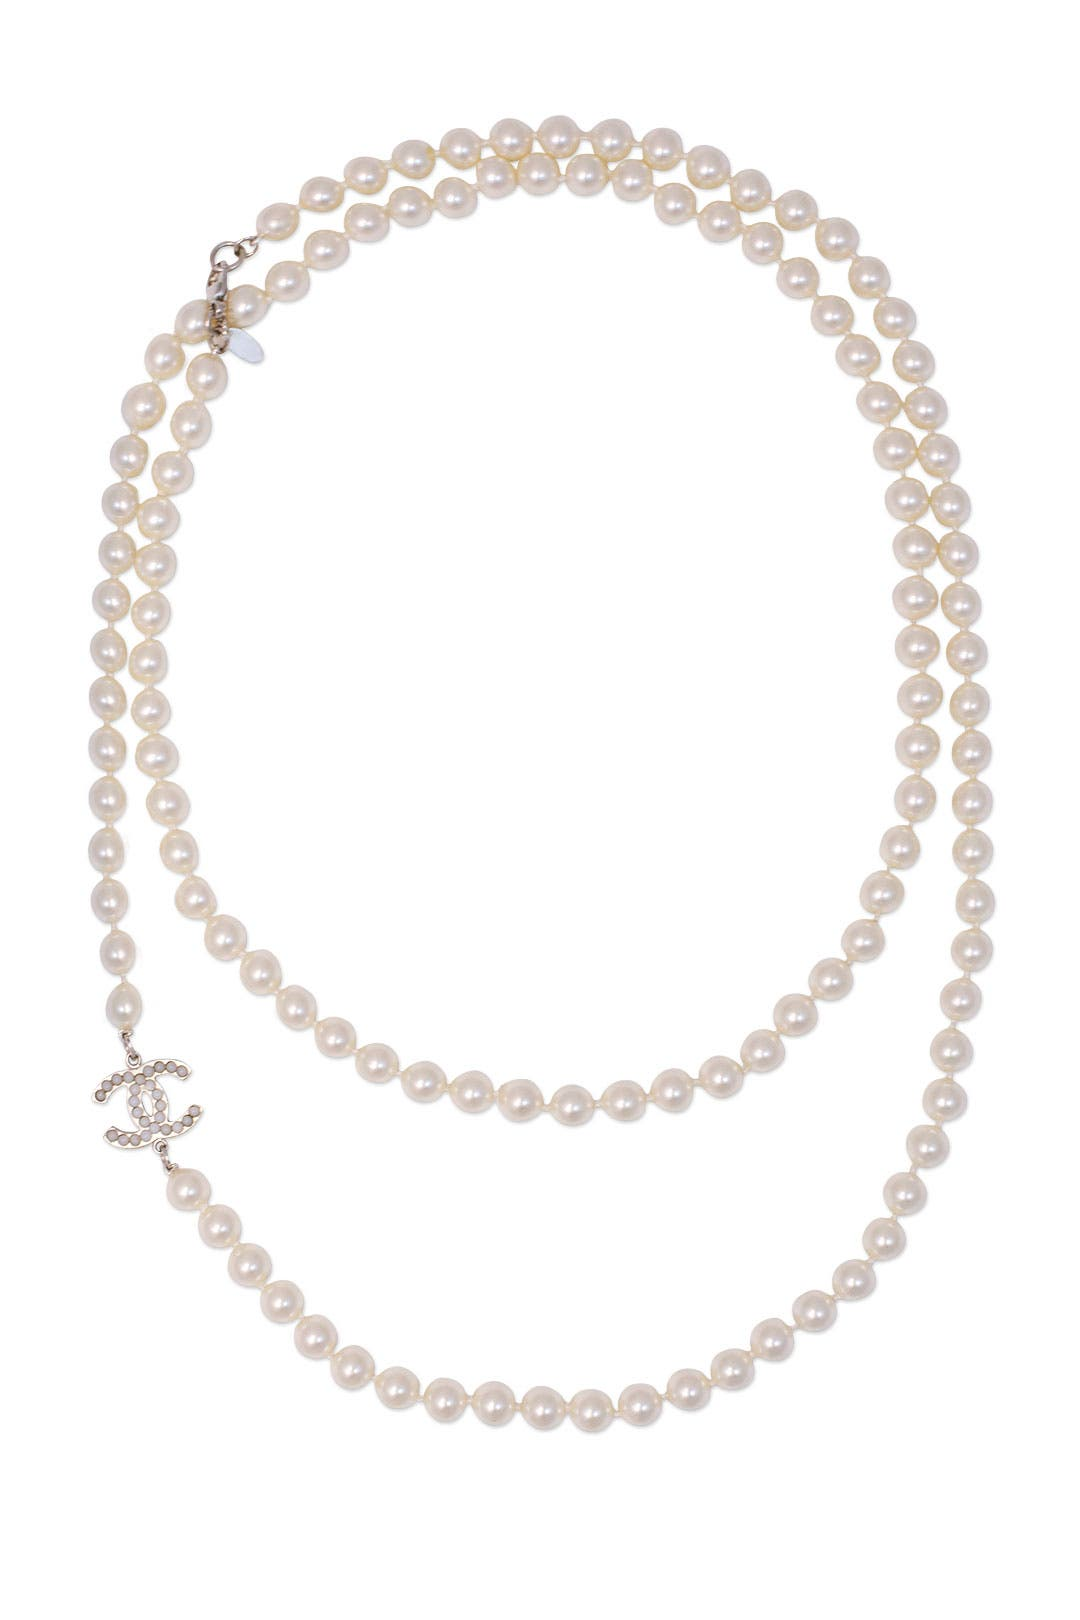 Vintage Chanel CC Pearl Necklace by Decades Vintage